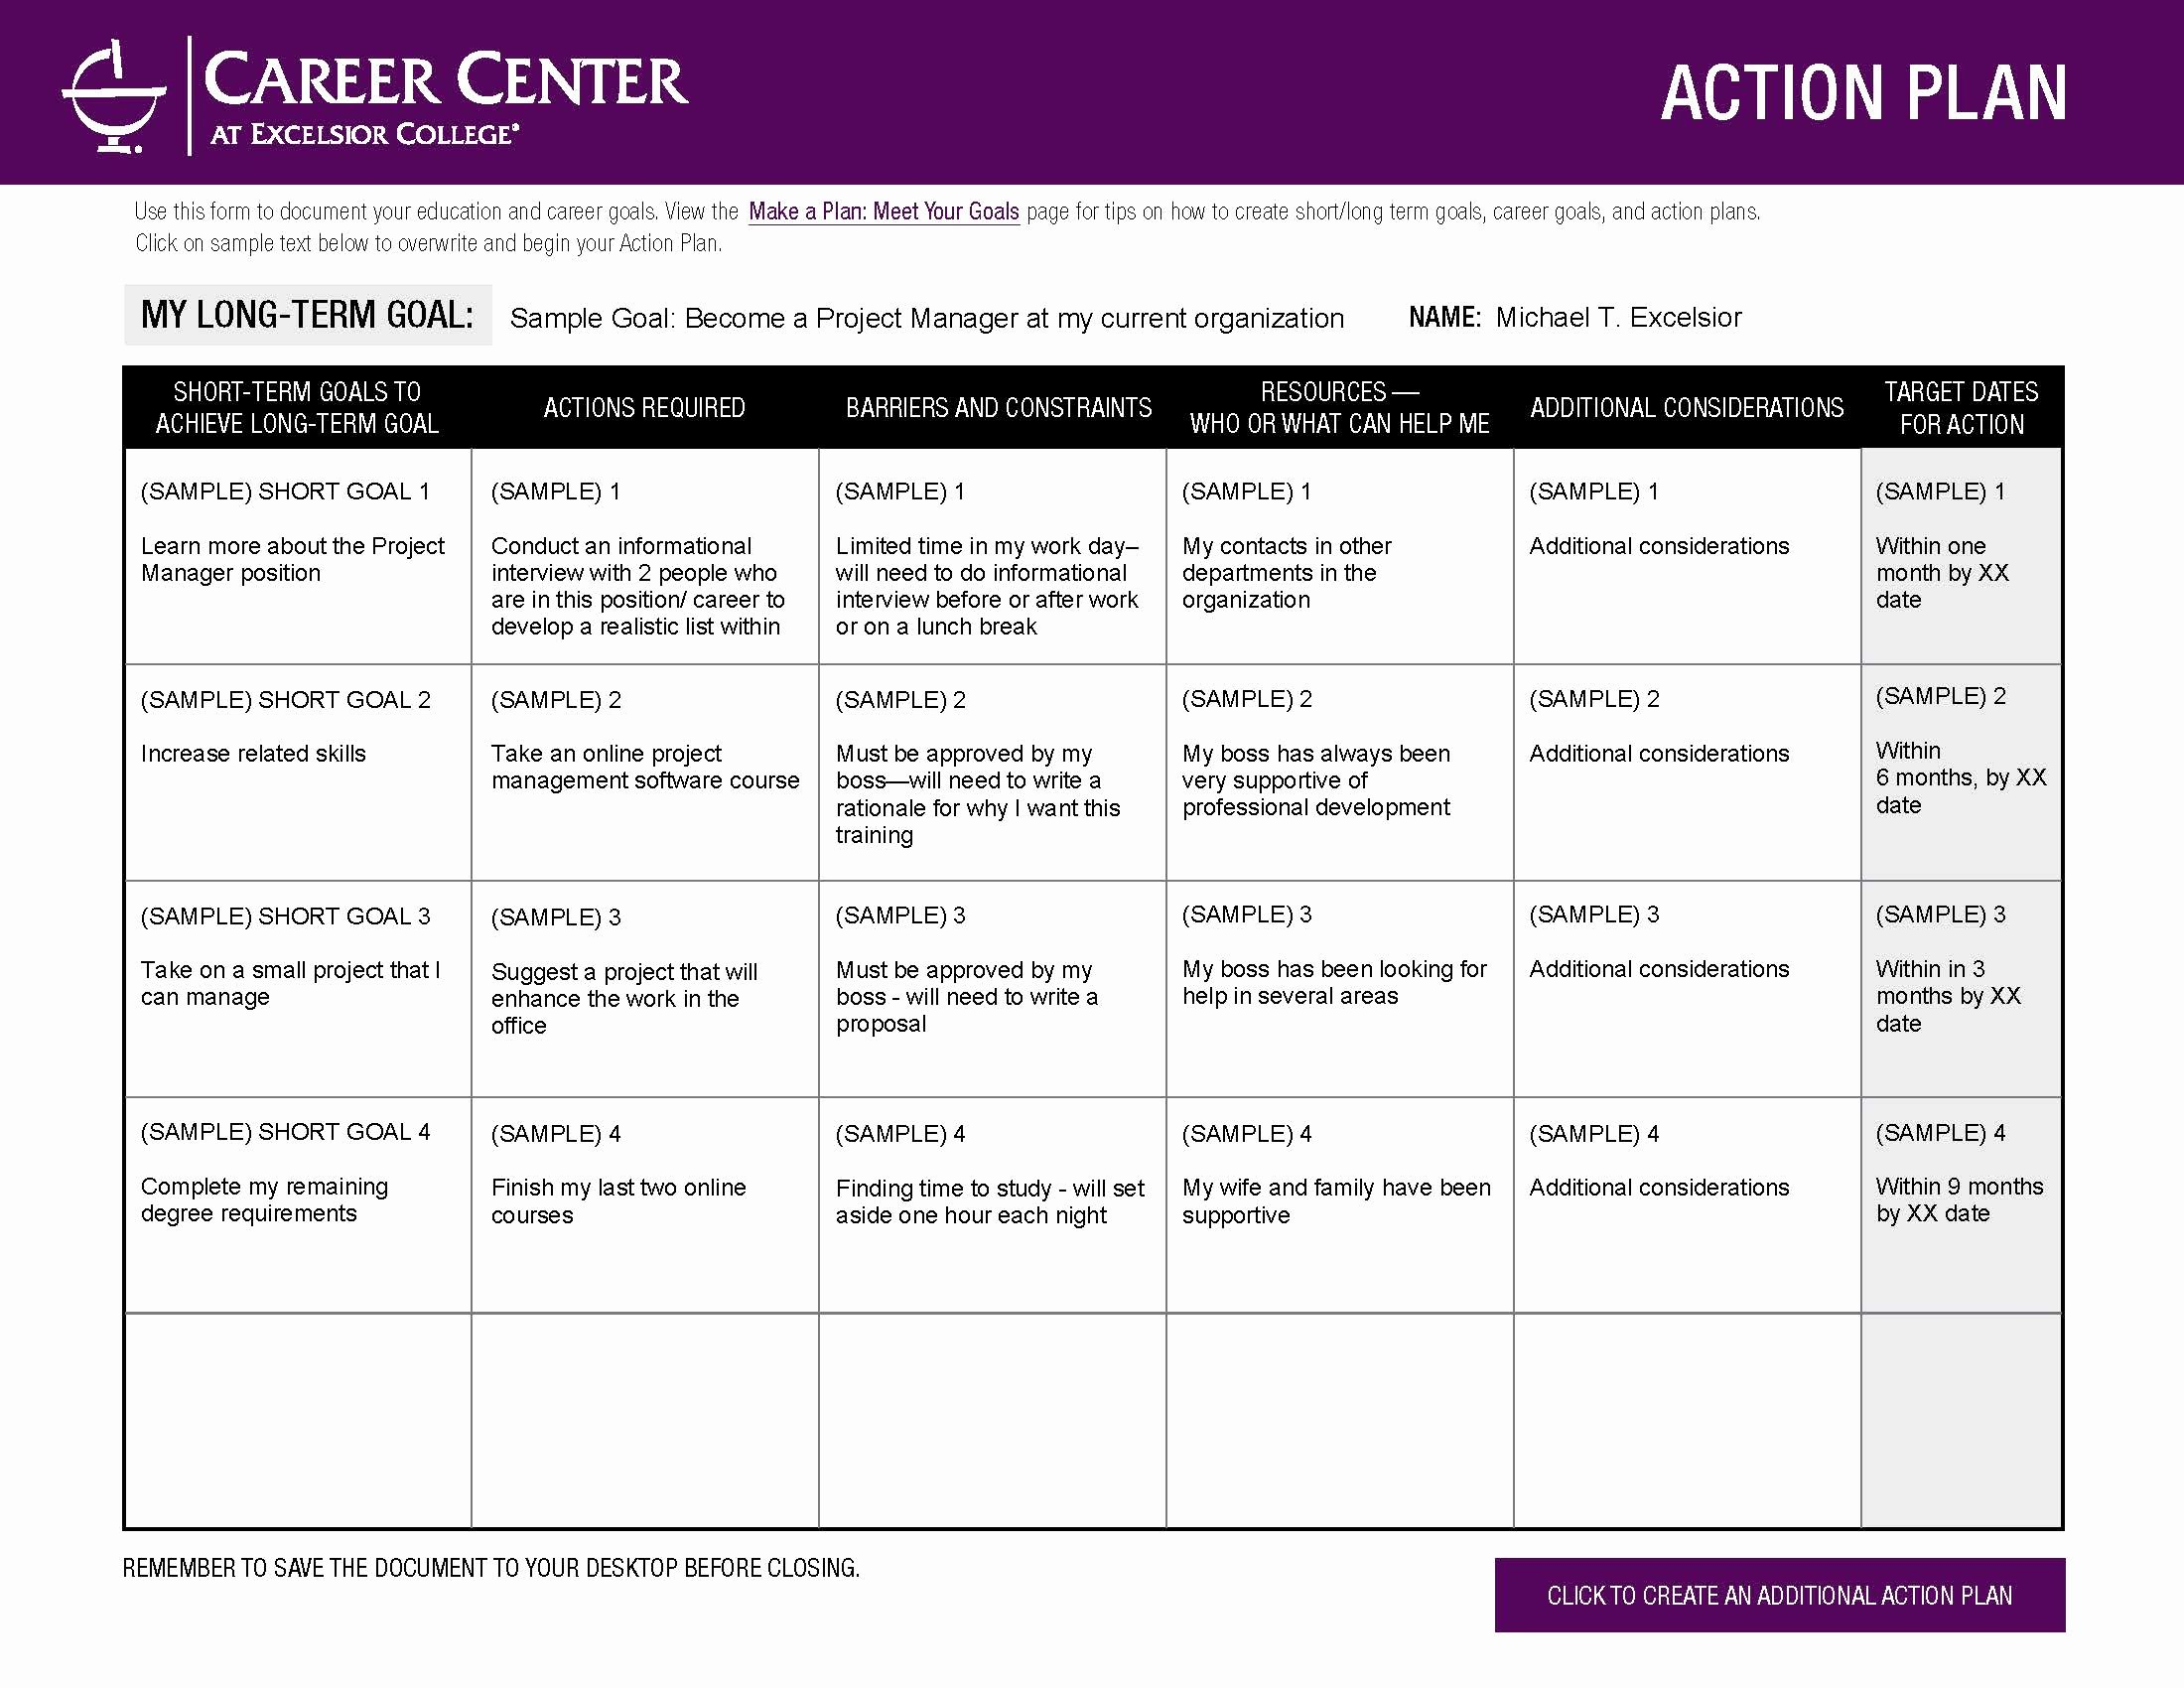 Employment Action Plan Template Luxury Excelsior College Make A Plan – Meet Your Goals